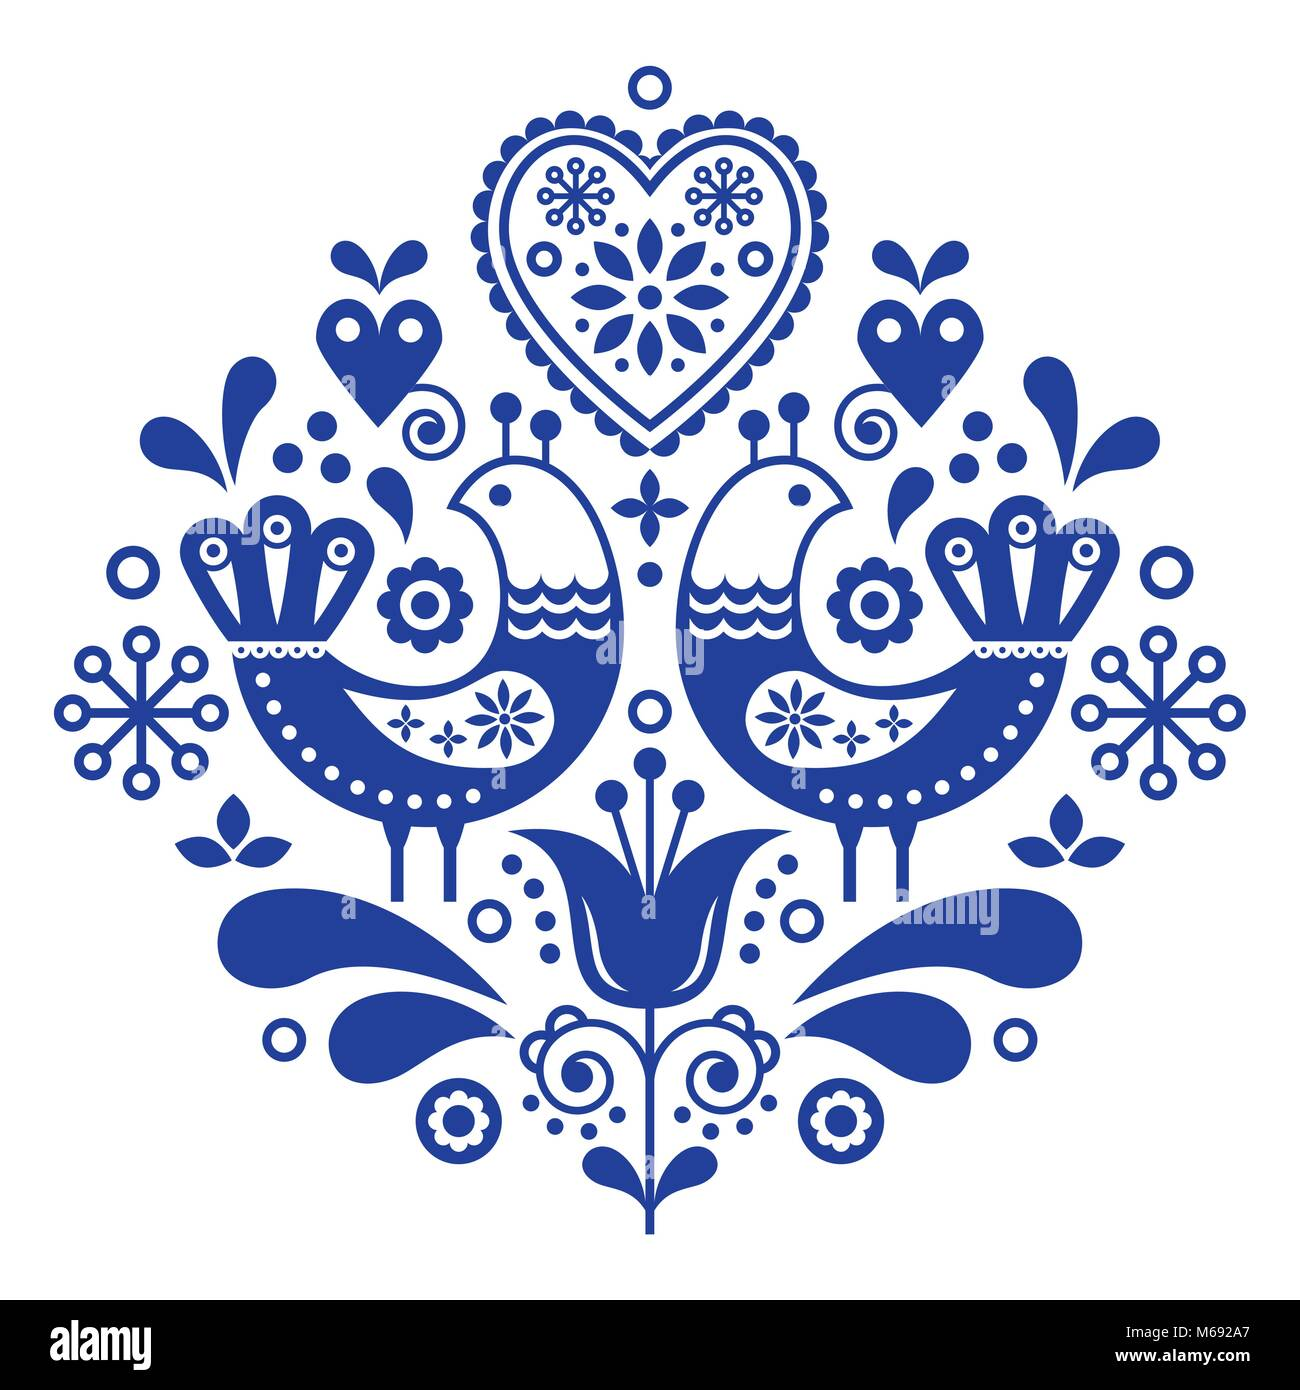 Scandinavian folk art pattern with birds and flowers, Nordic floral design, retro background in navy blue - Stock Image